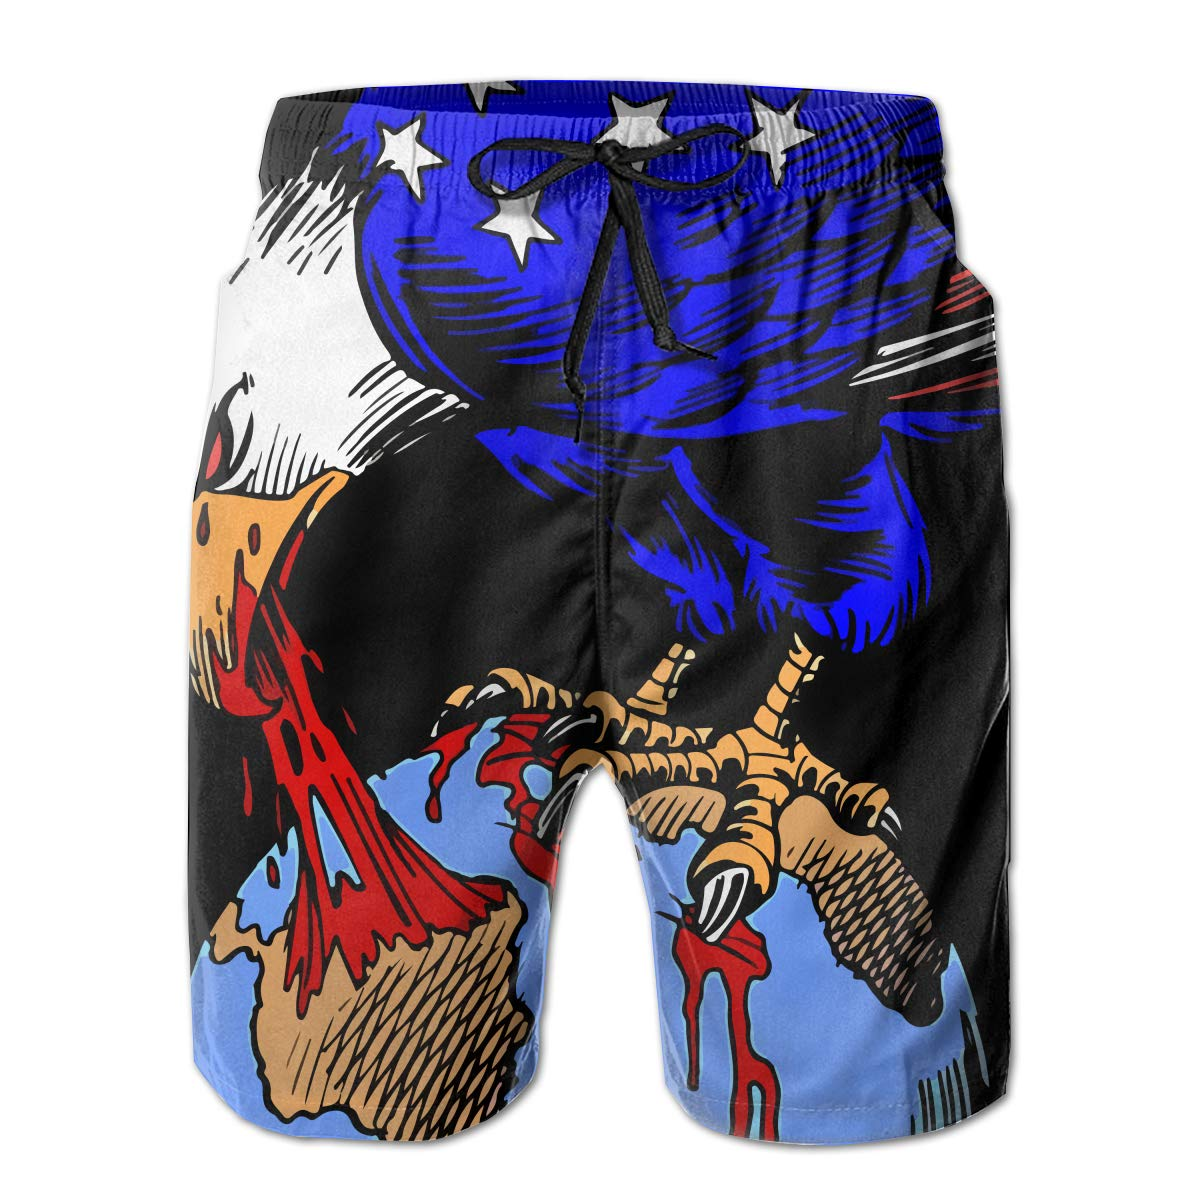 0099641330 White ROLLING HOP HOP HOP Men's Sports Swim Trunks Carlos Latuff Us  Imperialism Beach Board Shorts for Outside Home with Pockets 909697